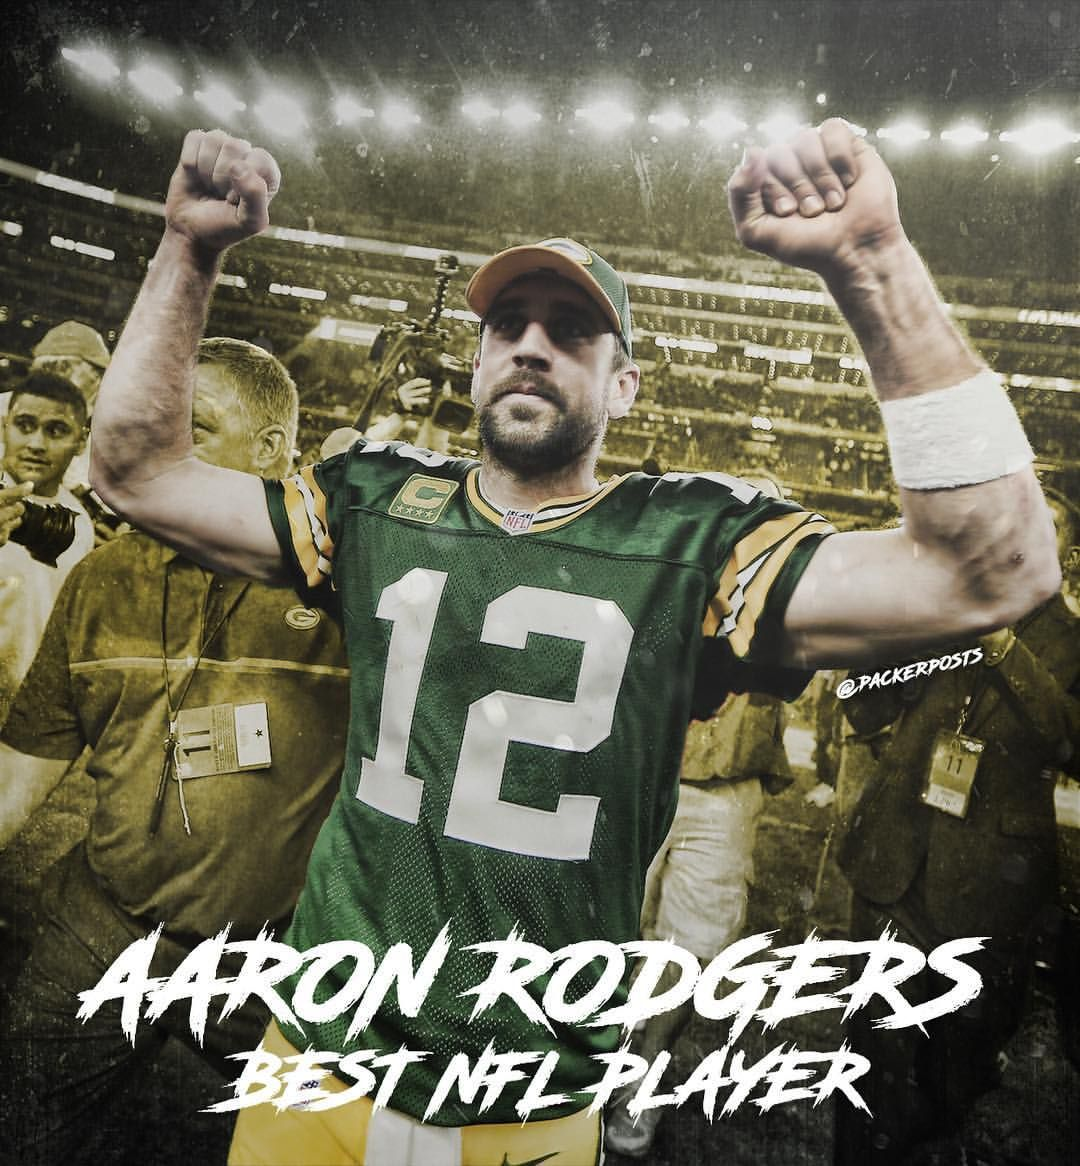 Aaronrodgers12 Takes Home The Espy For Best Nfl Player Over Tom Brady Zeke Elliot Khalil Mack Sweeeeettt Green Bay Packers Fans Nfl Players Green Bay